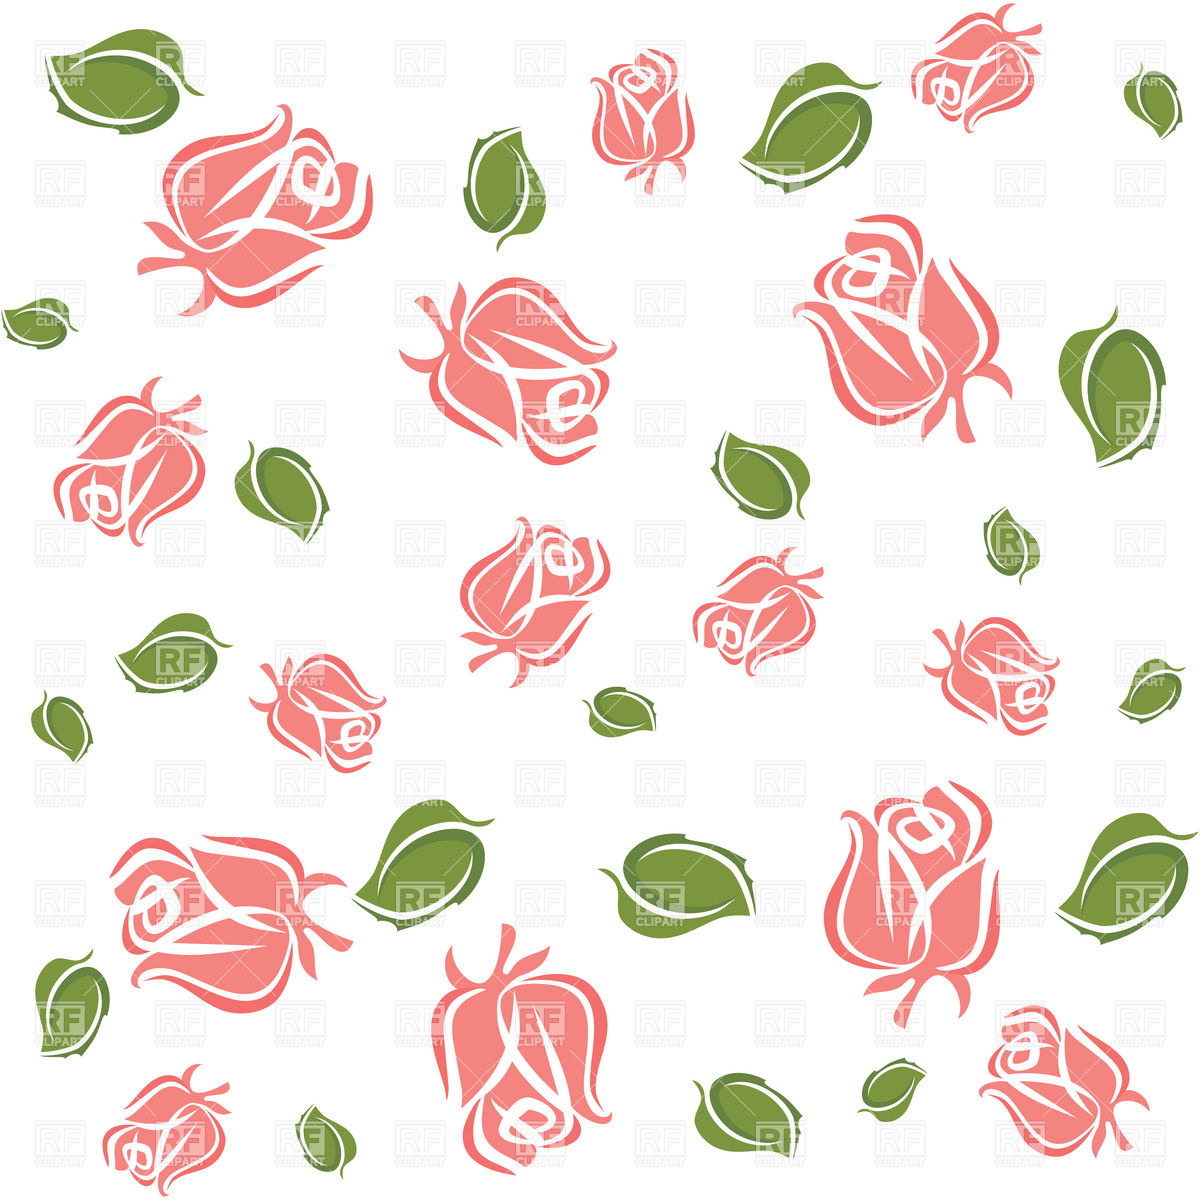 Wallpaper with rose buds and leaves Vector Image #17079.